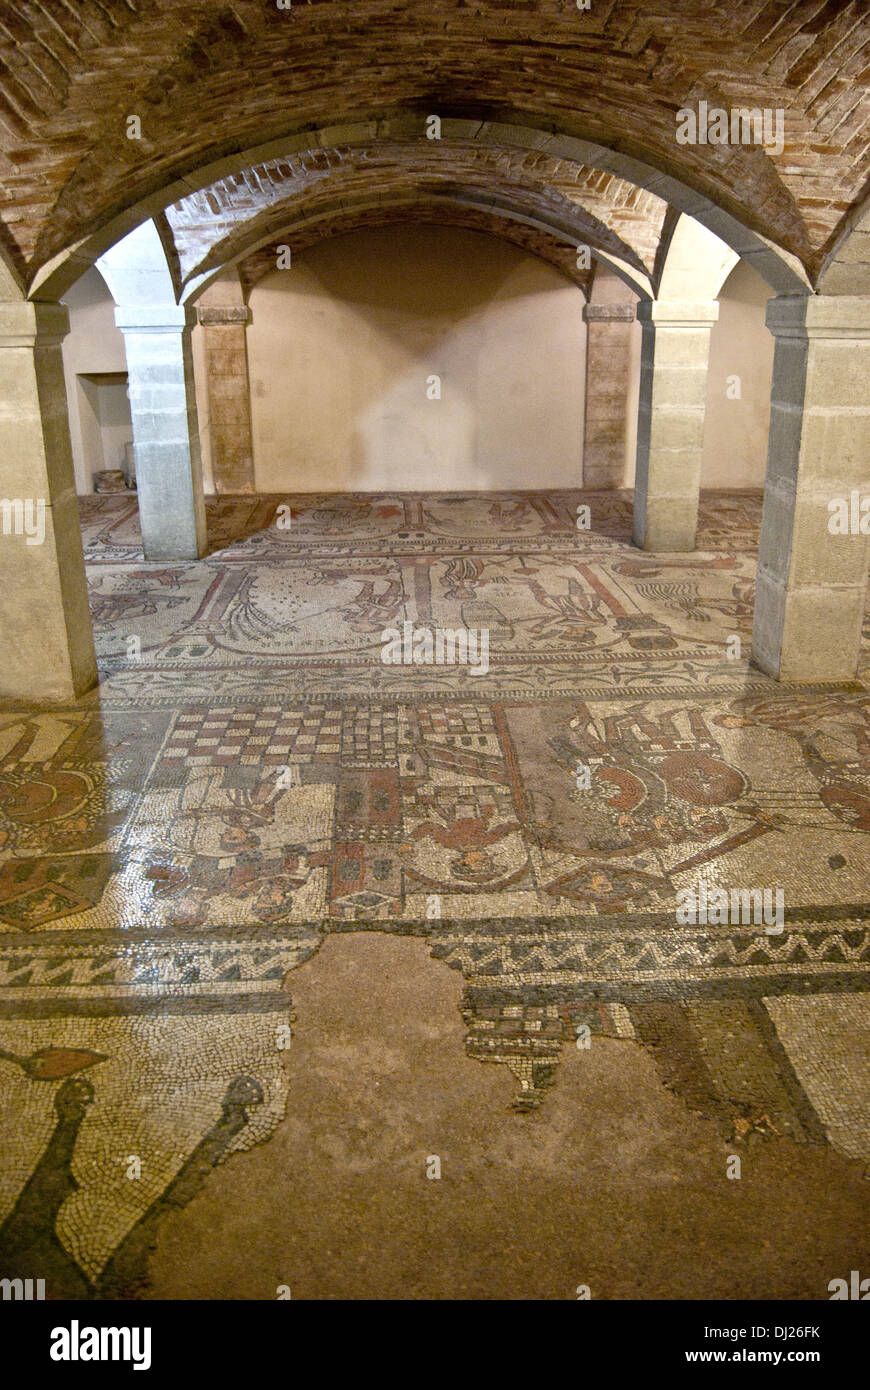 San Colombano church (mosaics in the crypt),  Bobbio, Emilia Romagna, Italy Stock Photo